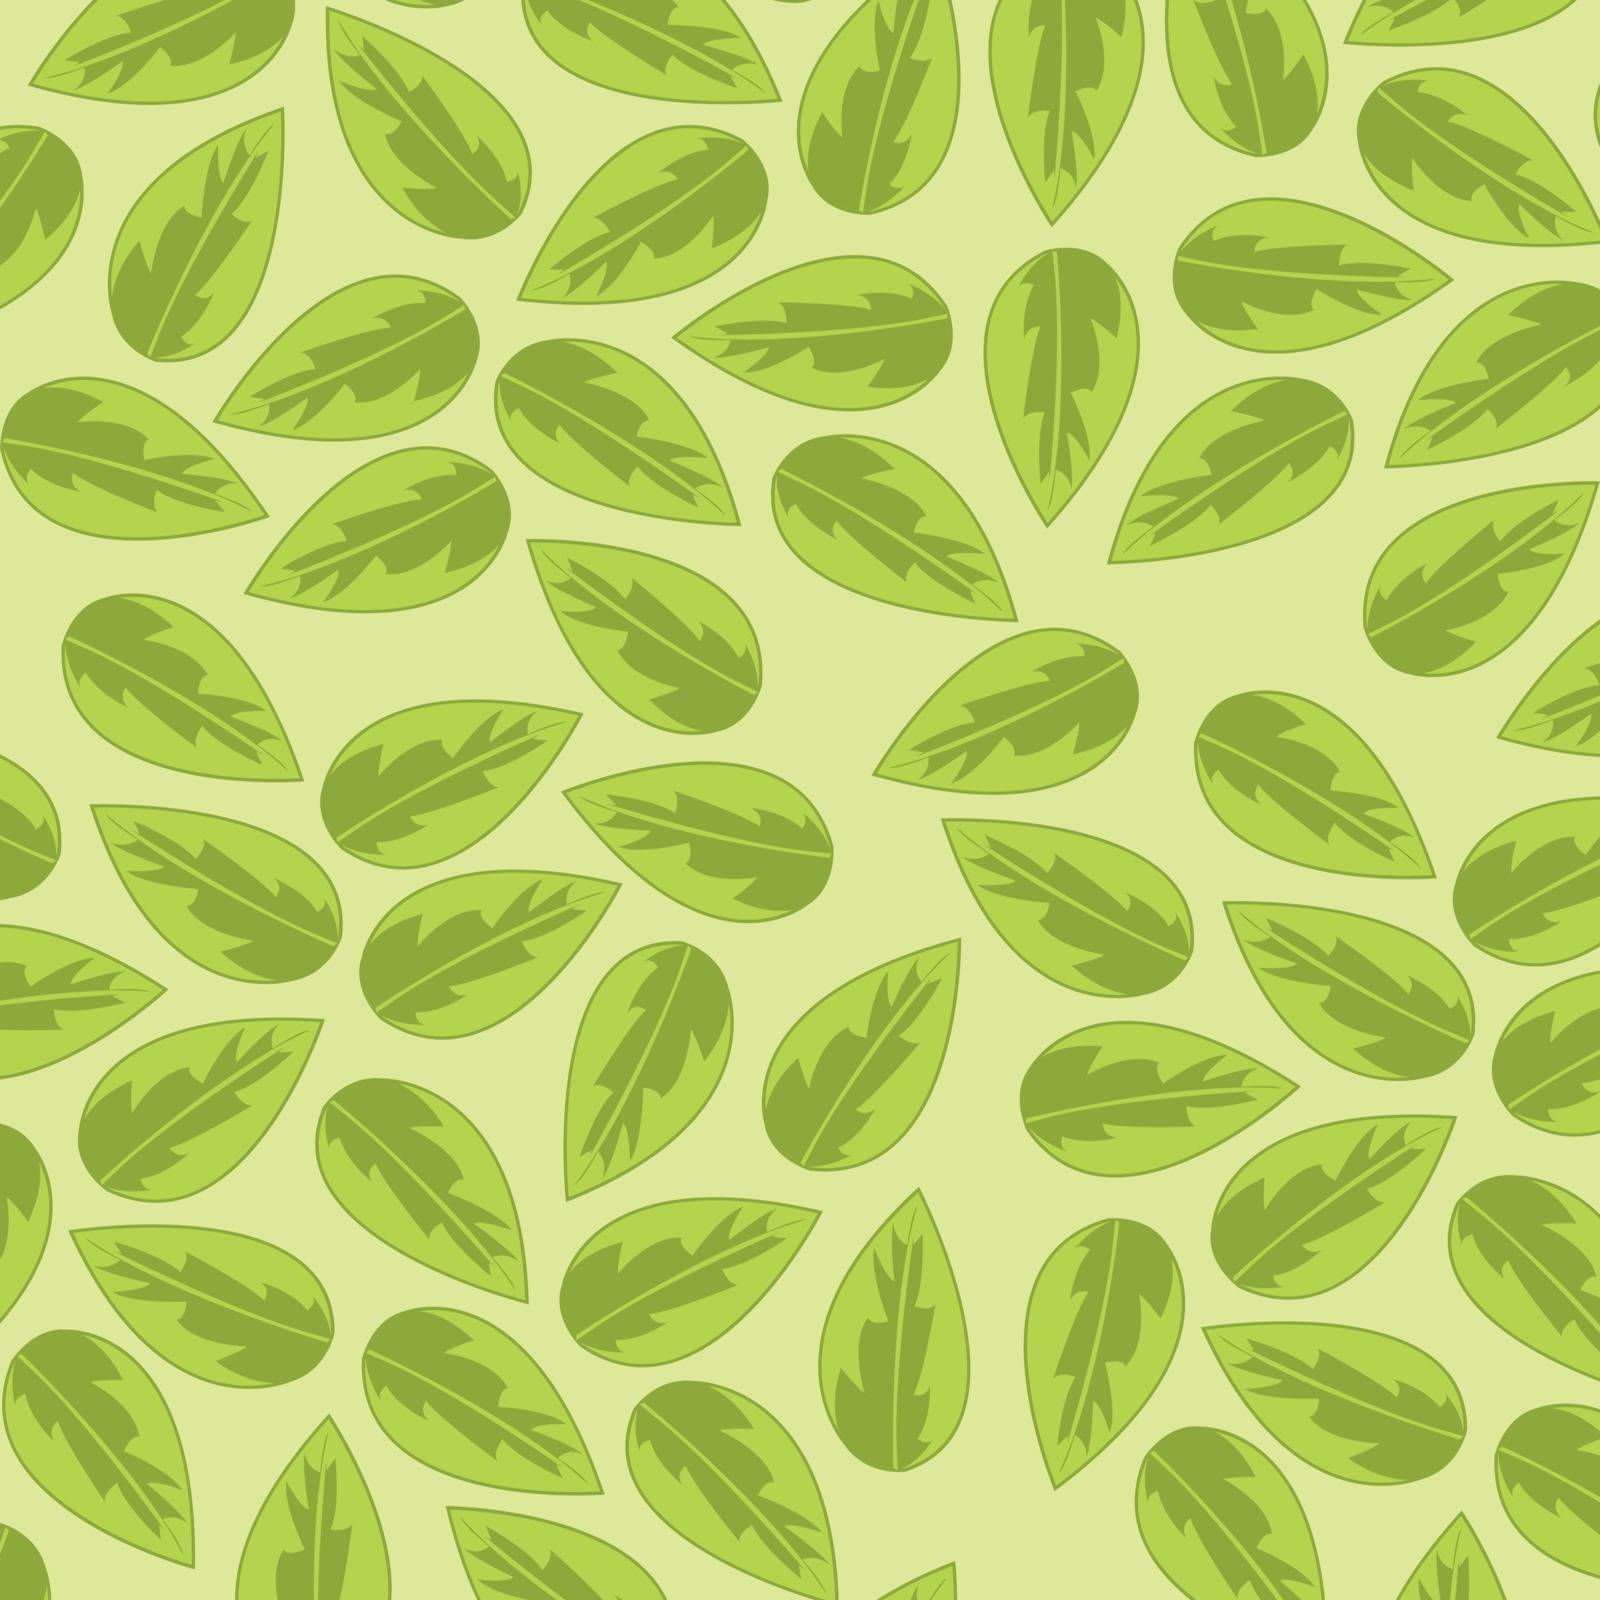 Year decorative pattern from green foliage.Vector illustration